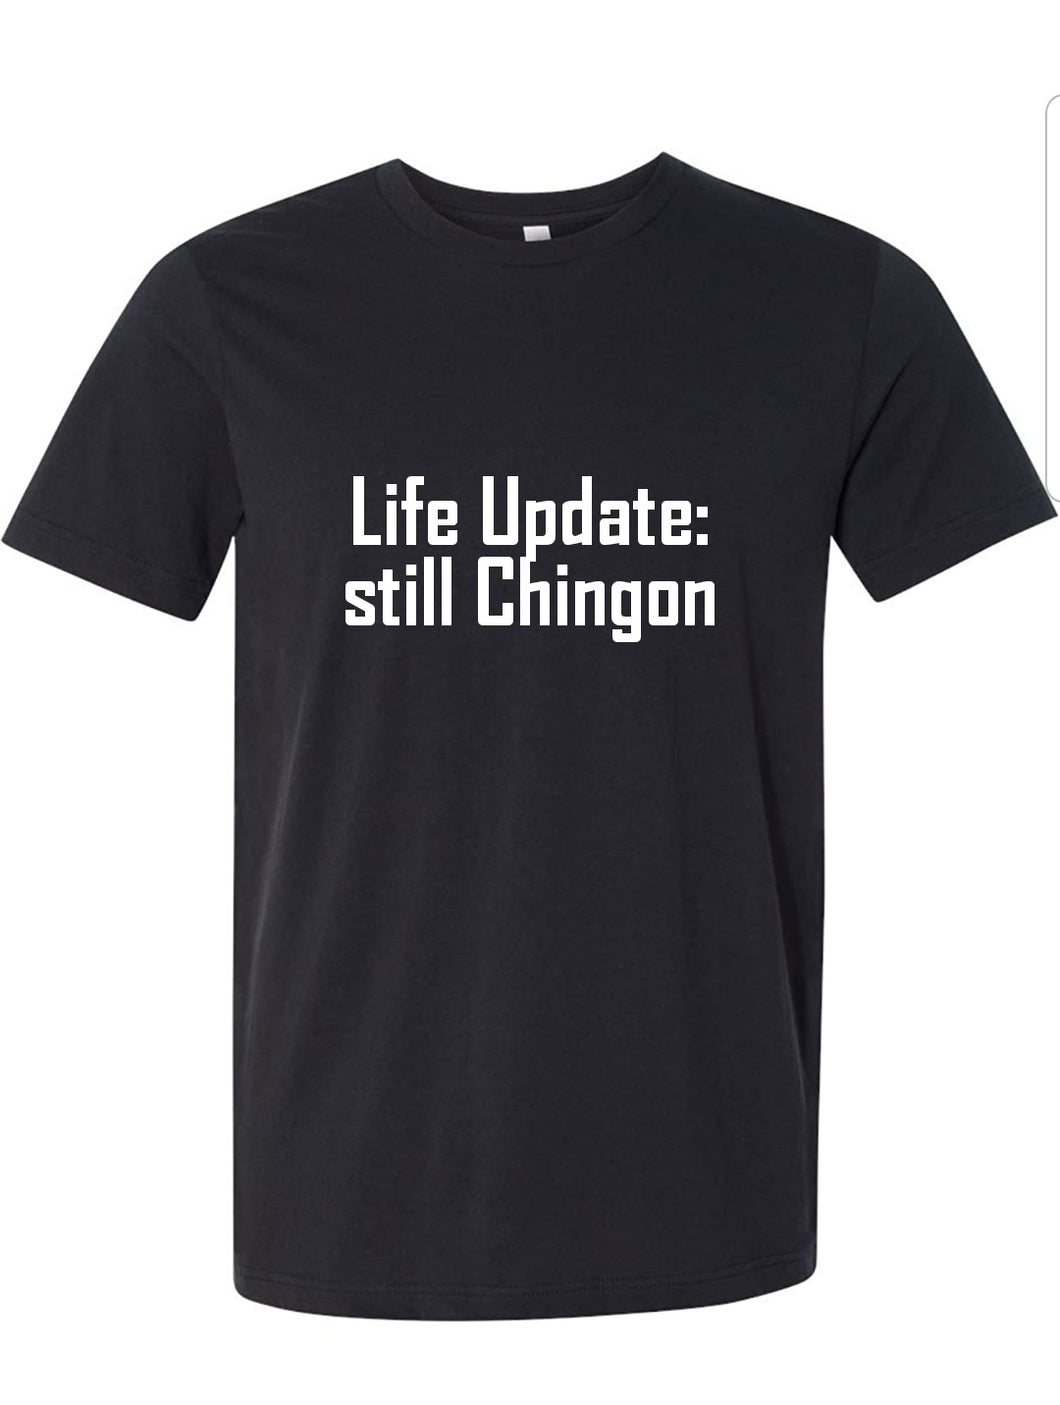 Life Update: still Chingon TShirt